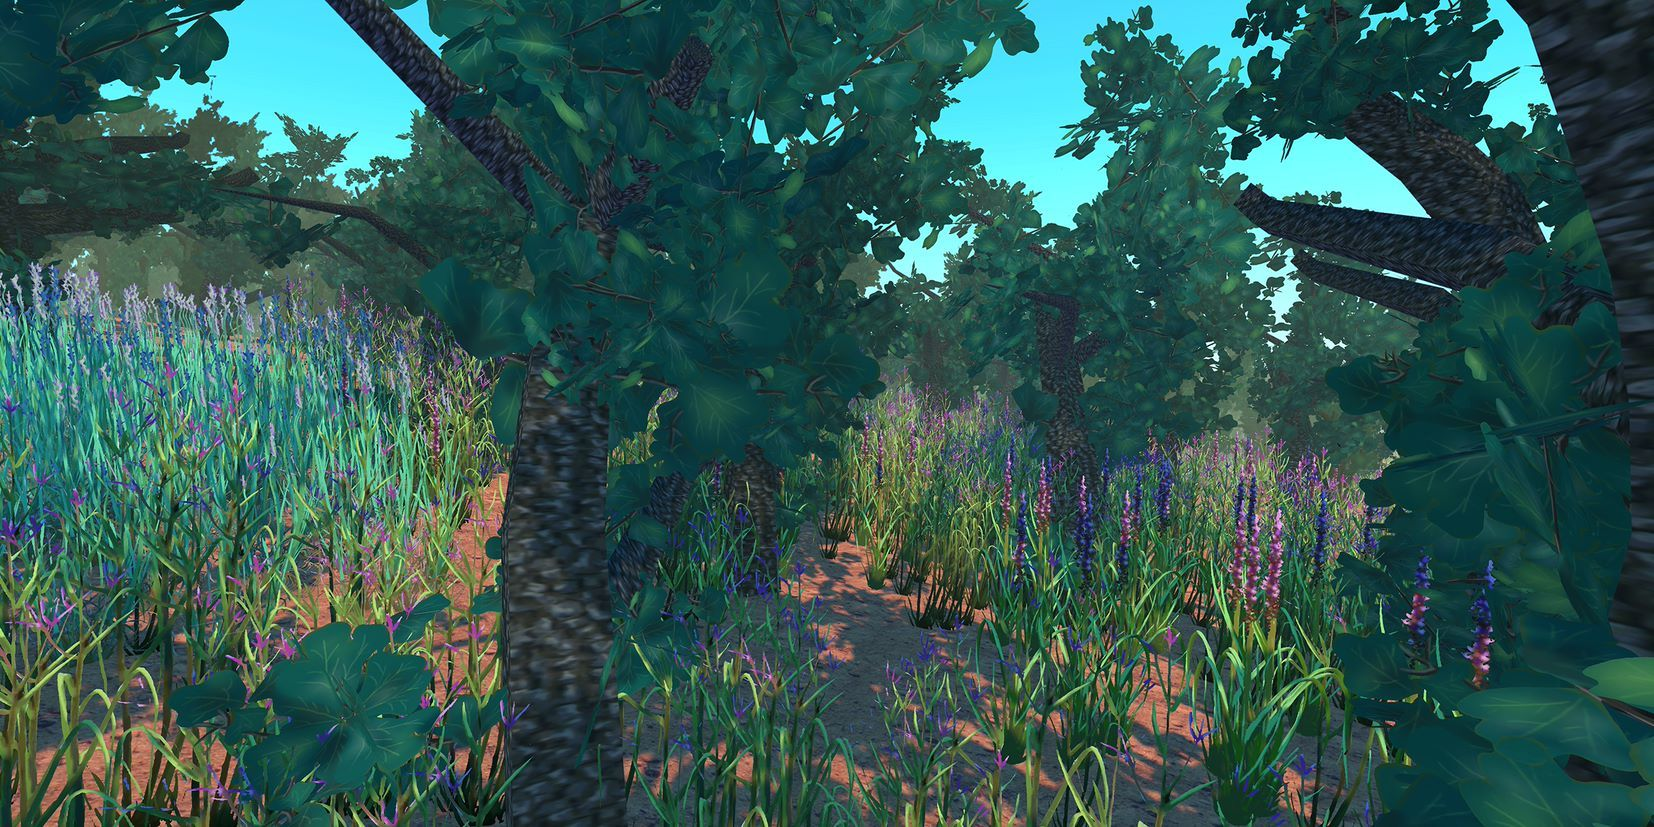 A digital simulation of an oak forest grove